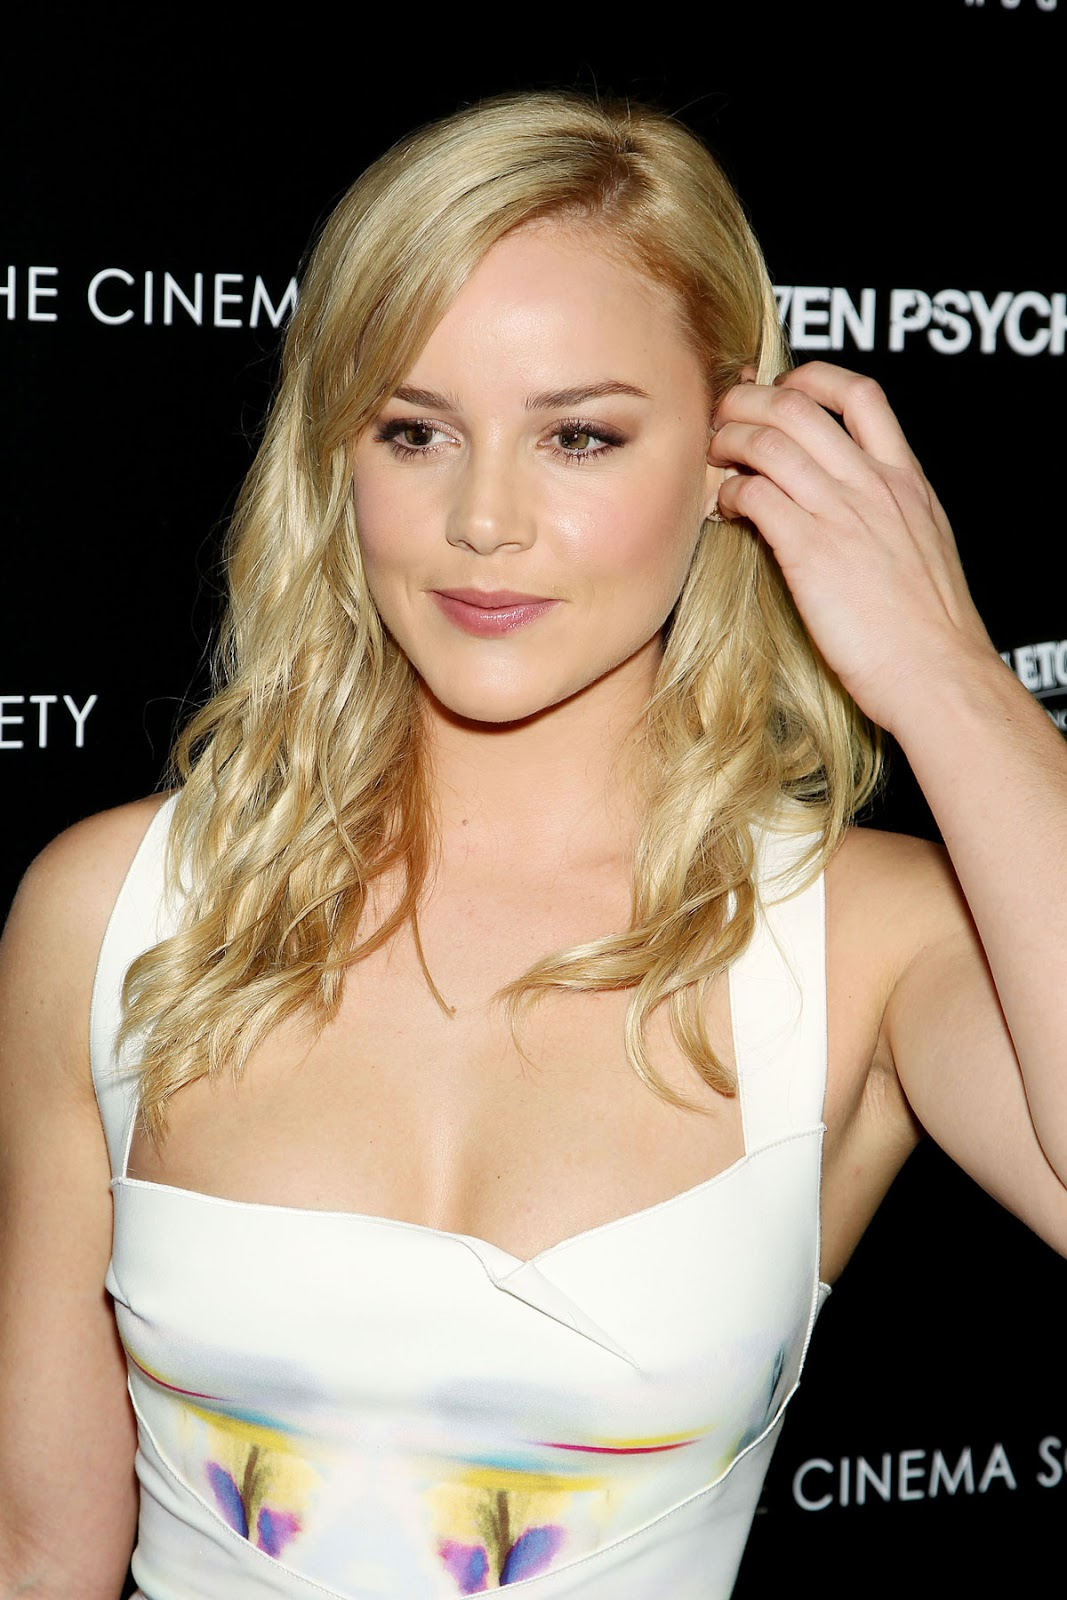 Celebrity Abbie Cornish naked (54 photo), Topless, Paparazzi, Boobs, cleavage 2006